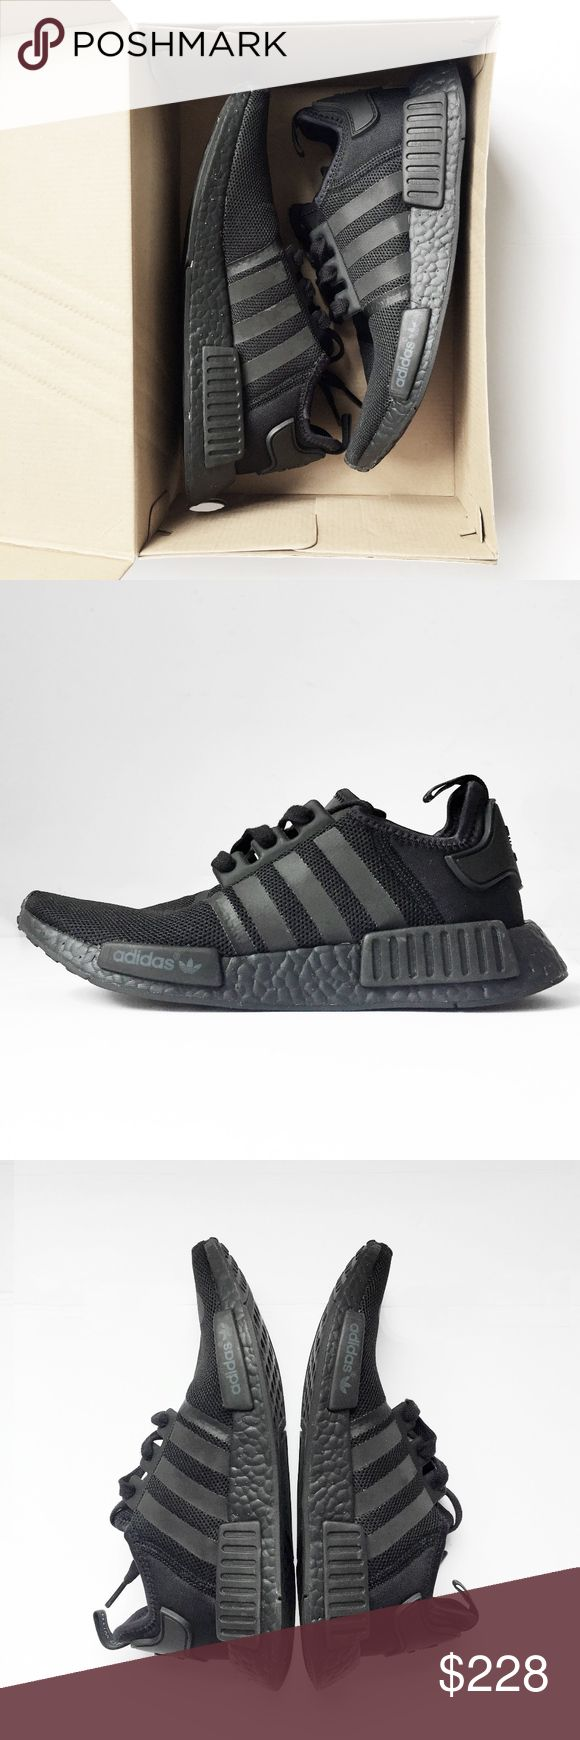 ADIDAS NMD R1 boost triple black shoes men's 7.5 ADIDAS ORIGINALS  NMD R1   rare, sold out.  boost. triple black. worn once.  professionally cleaned + disinfected.  I do not sell inauthentic items. comes in its original box.  running athletic sneakers training trainer yeezy flyknit kanye 350 700 all black nike y3 air jordan retro jeremy scott flight club hypebeast sneaker head reflective collector's core japan mid top goat basketball skate sb neighborhood adidas Shoes Athletic Shoes